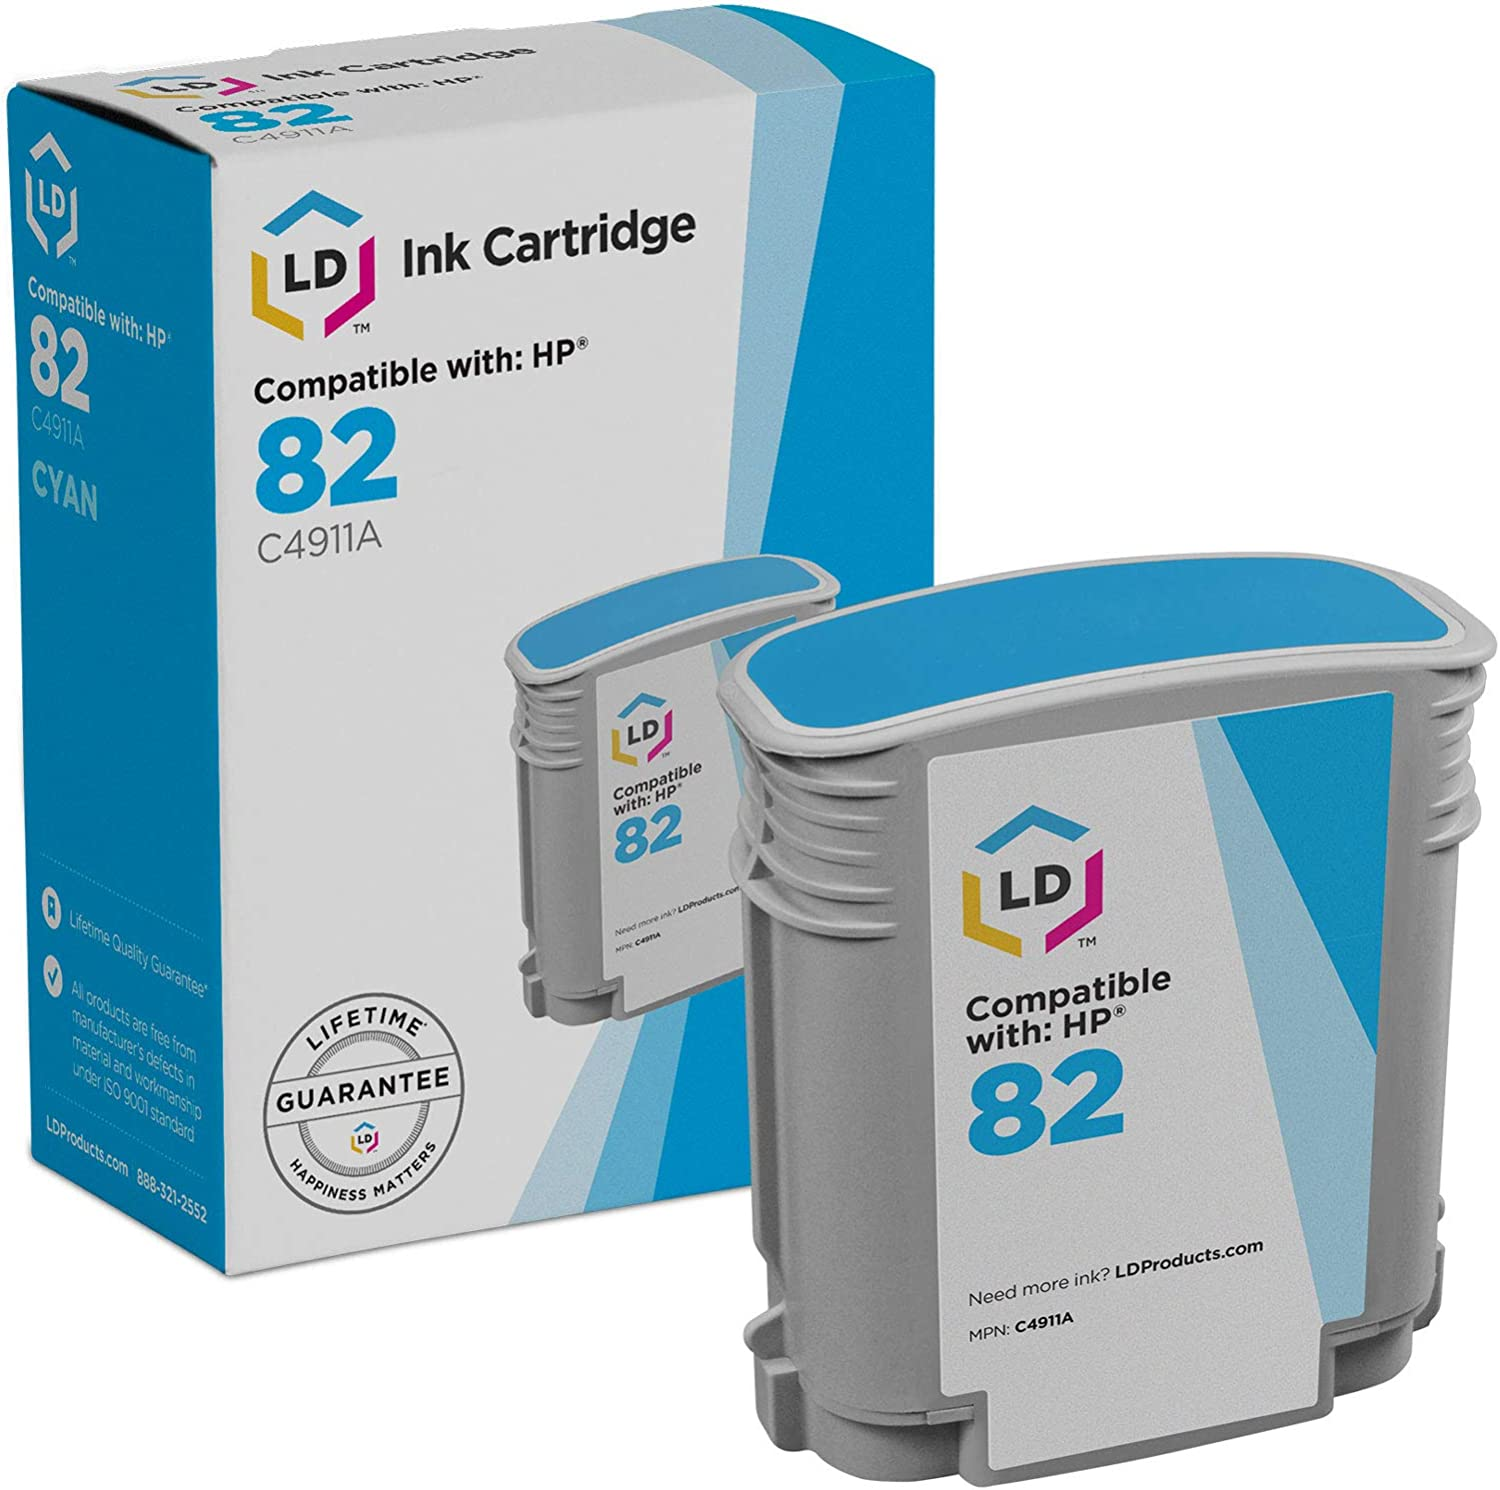 LD Remanufactured Ink Cartridge Replacement for HP 82 C4911A (Cyan)